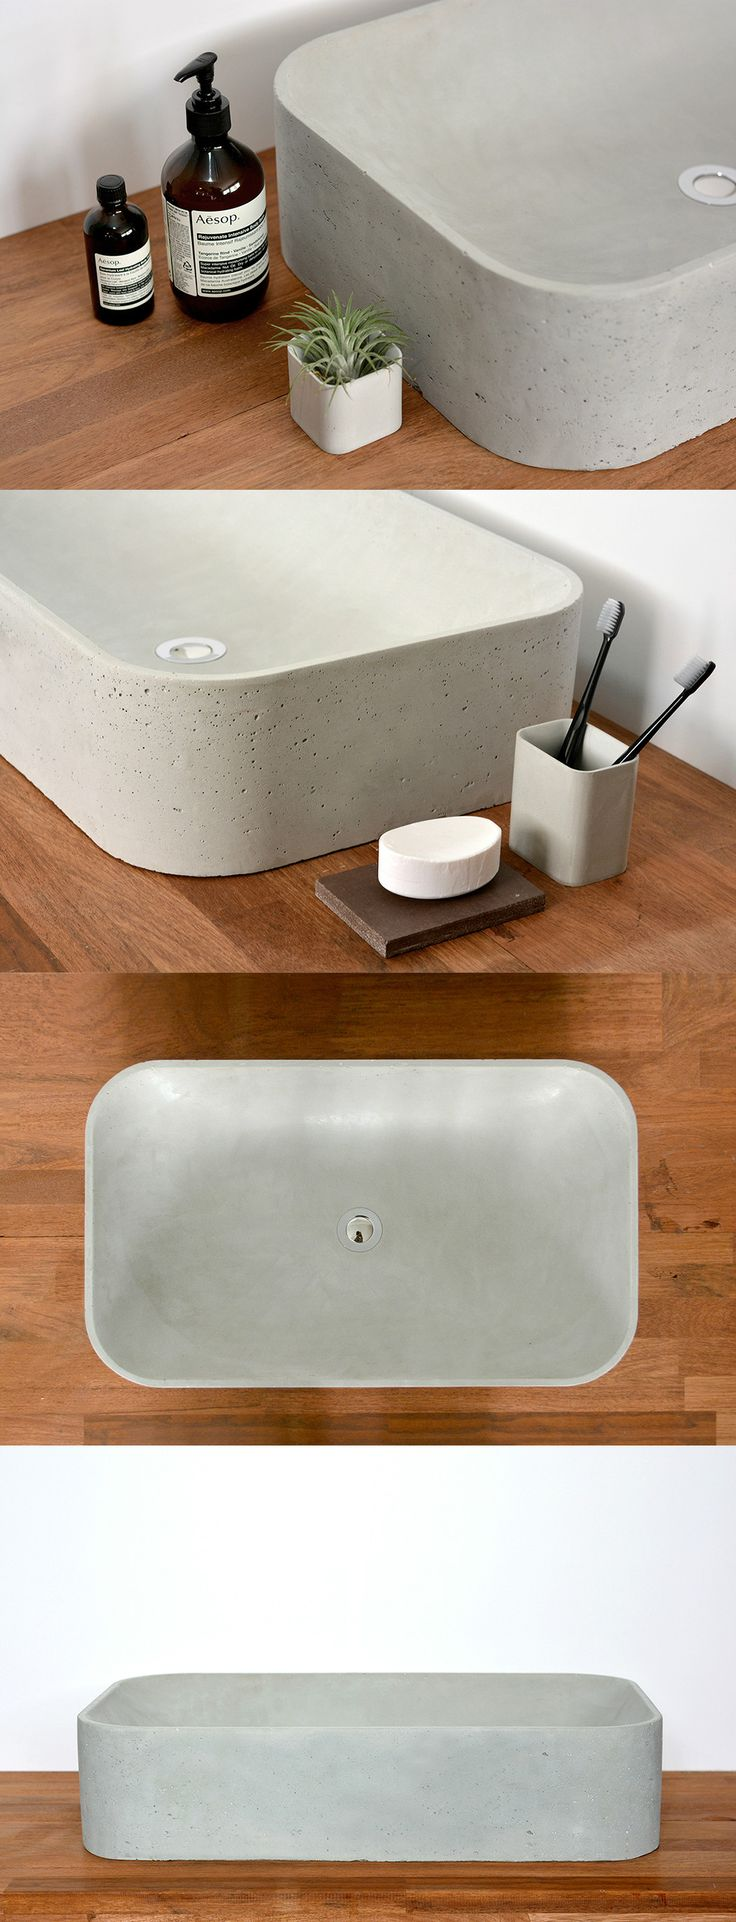 The sink gives a peek into your personal style more than any other object in the…